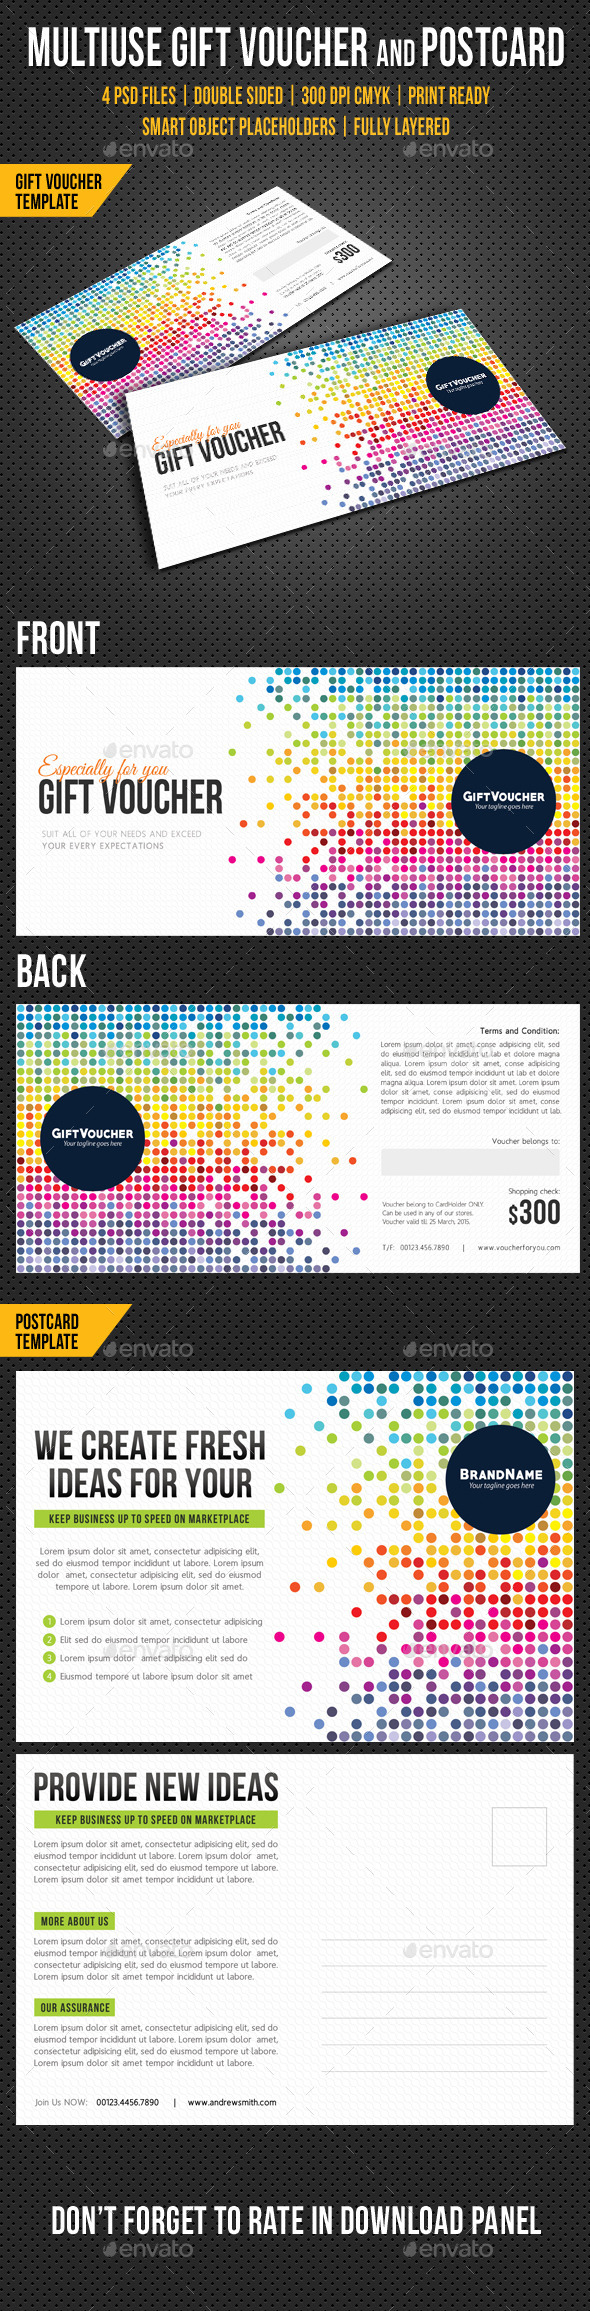 GraphicRiver Multiuse Gift Voucher and Postcard V02 10483425